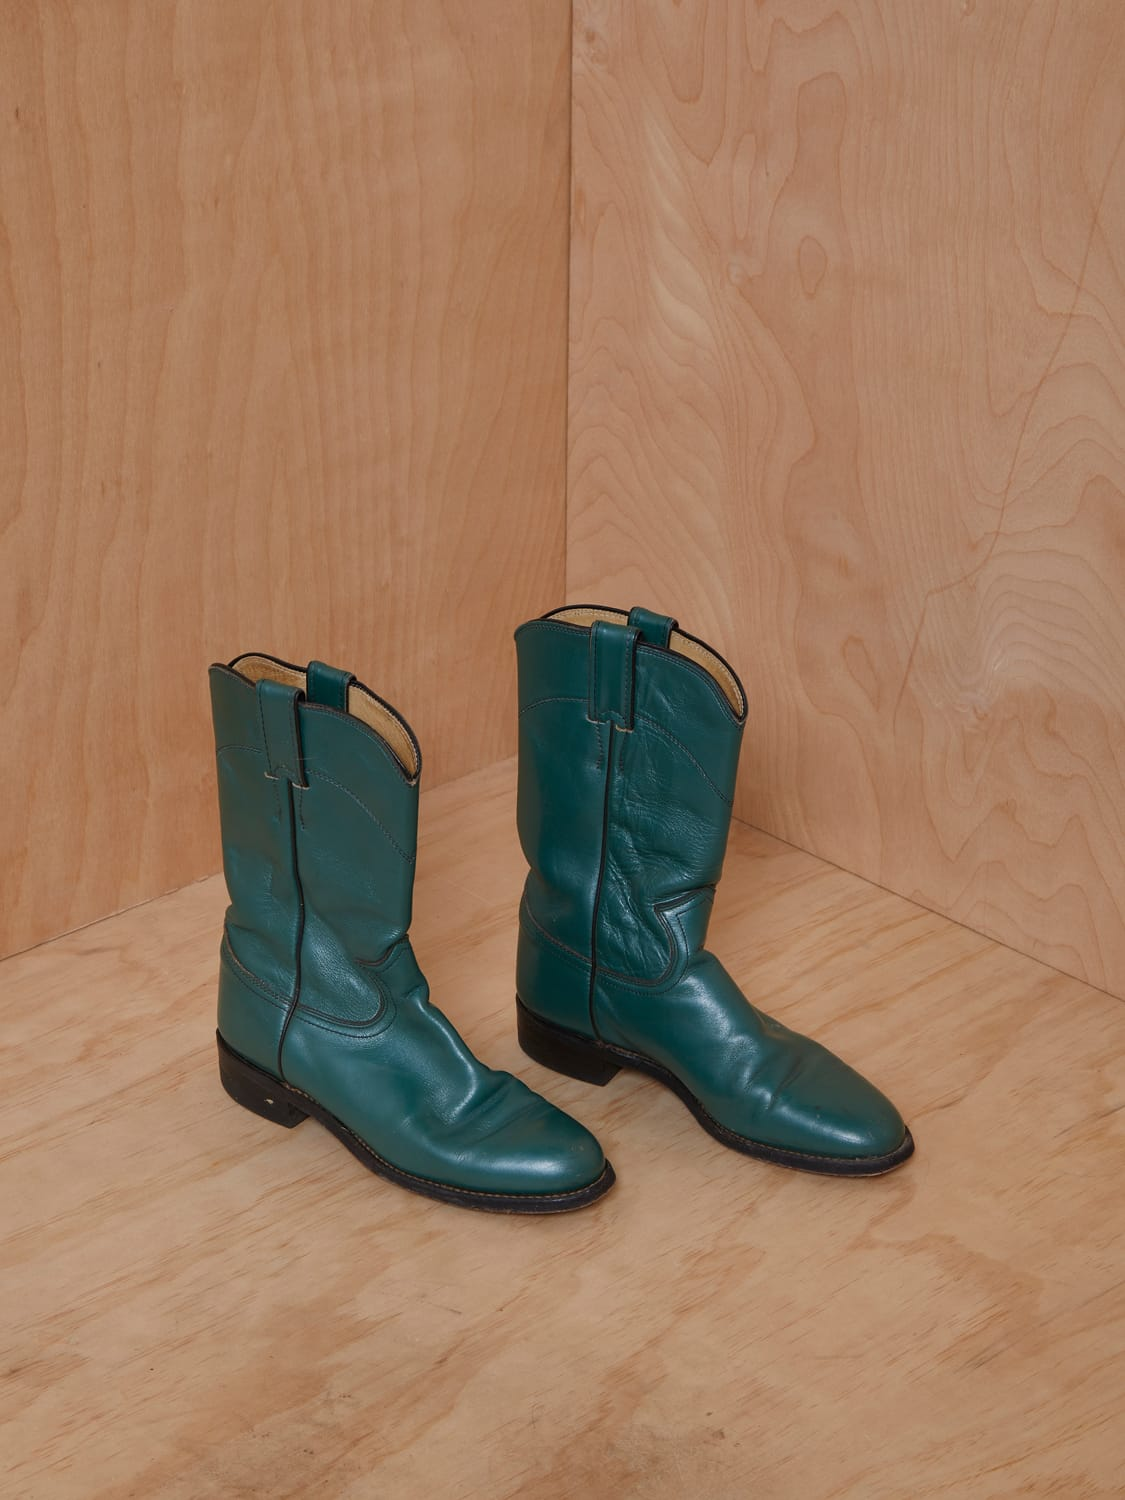 Vintage Forest Green Leather Cowboy Boots